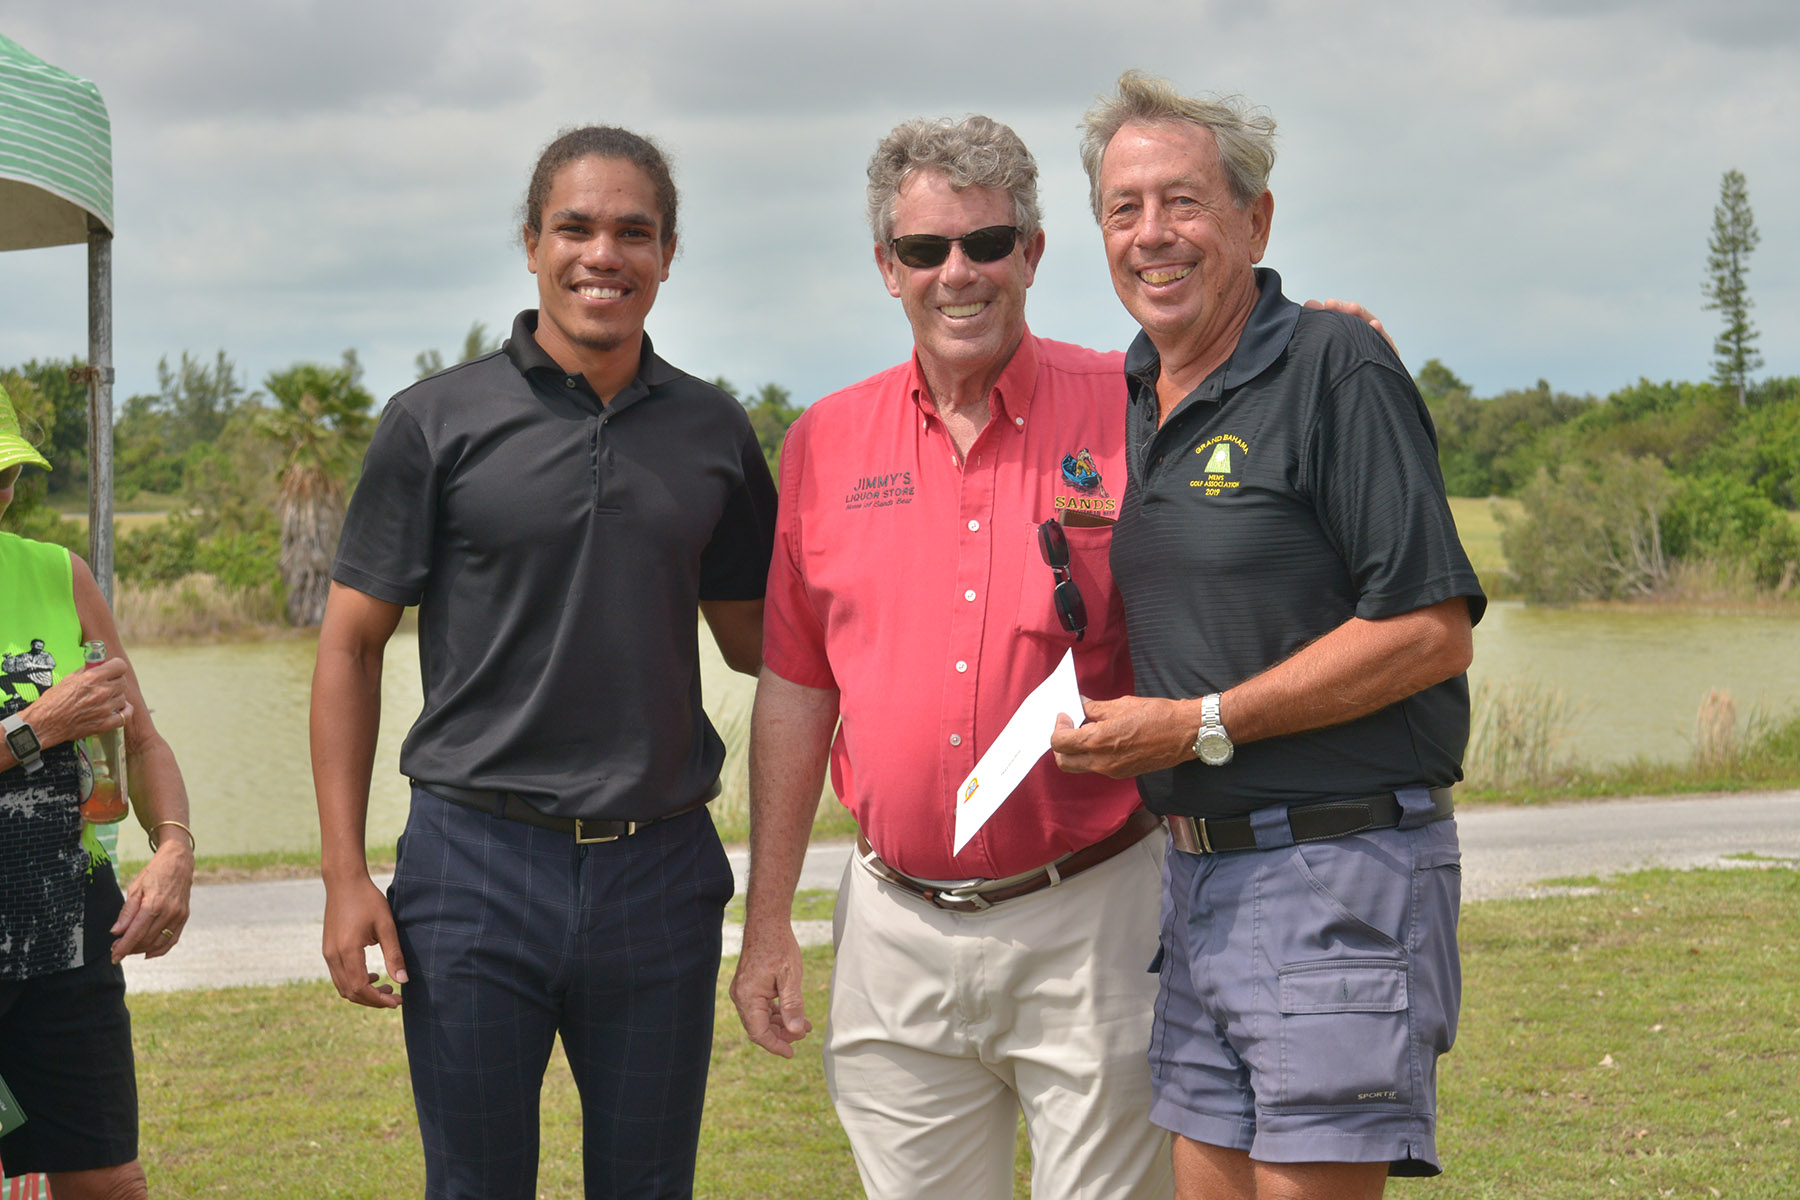 Sands makes 9th-year tournament one of giving back